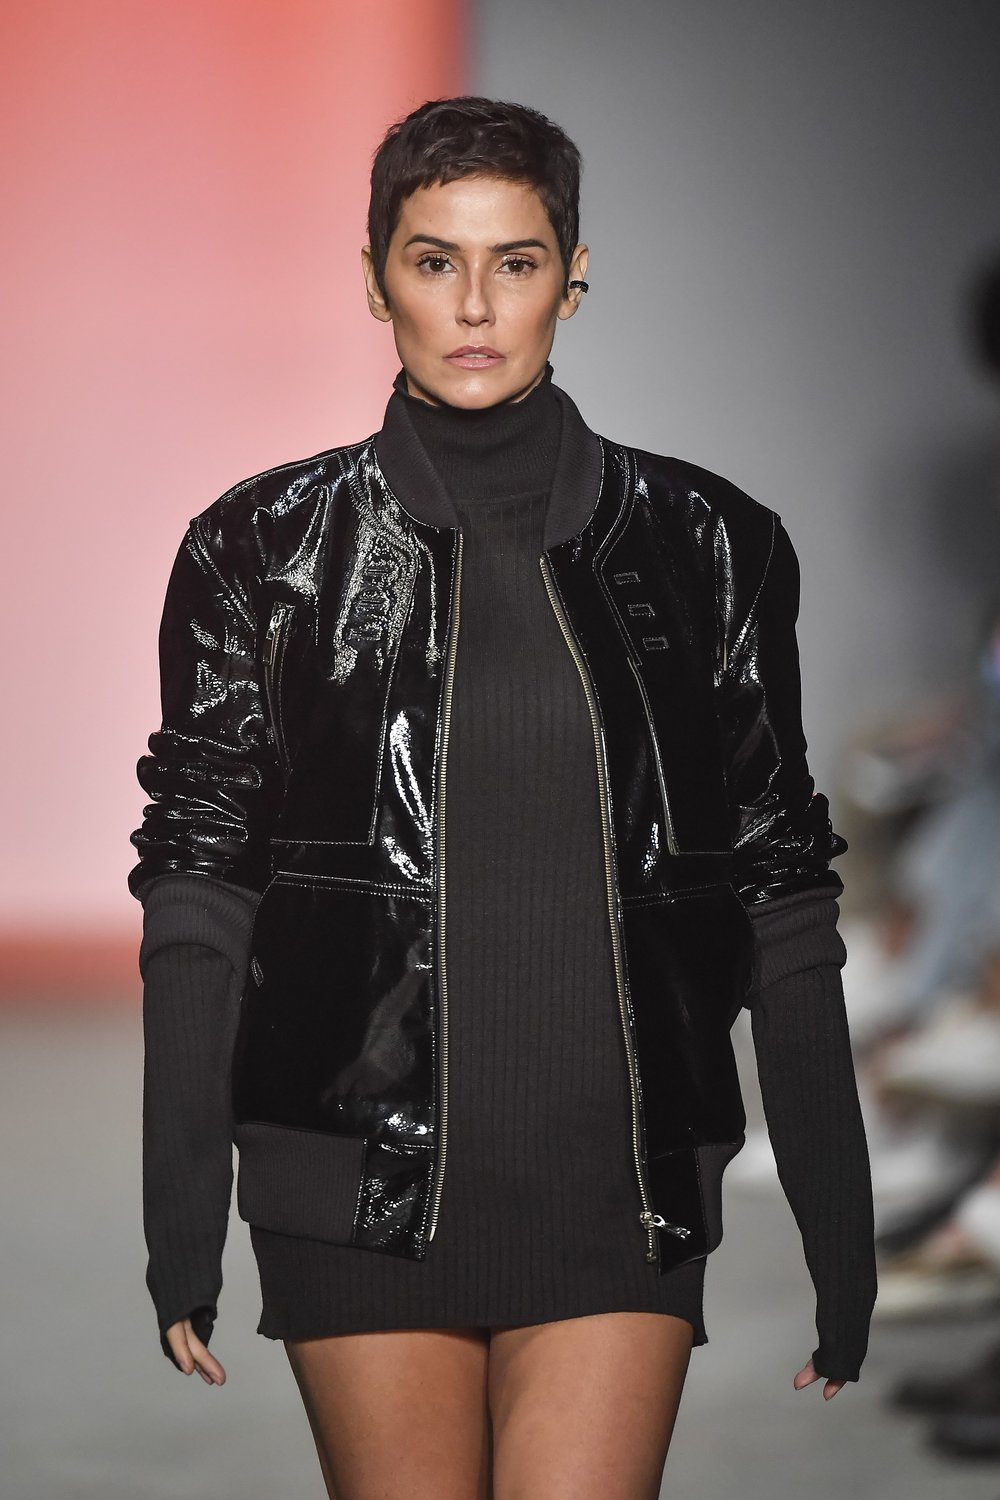 Actress Deborah Secco walked the runway for Torinno / Photo: Marcelo Soubhia.